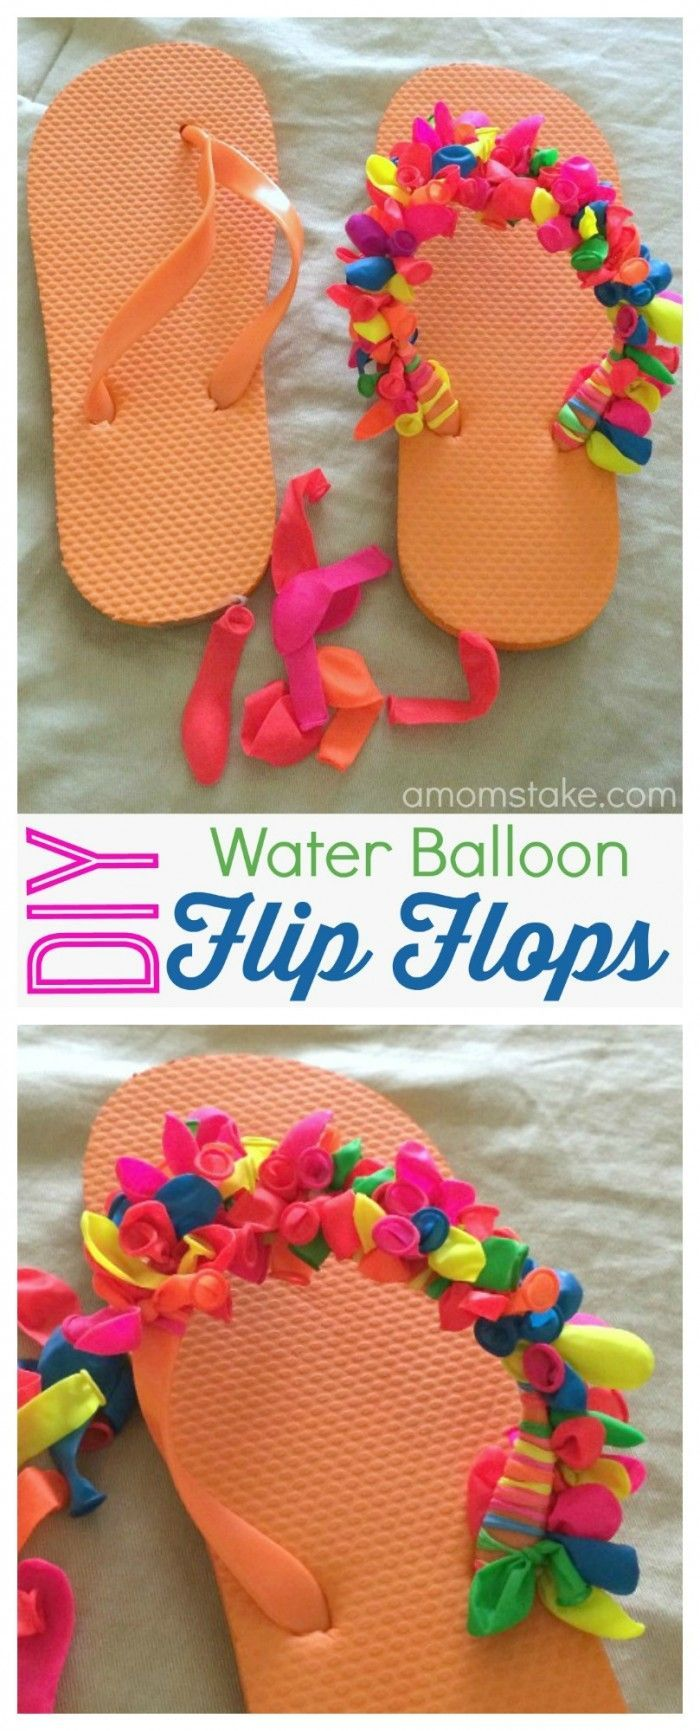 Love this summer project to make your own DIY decorated flip flops - all you'll need is a pack of water balloons! Mix and match patterns or make a rainbow pair. How to make these fun summer flip flops for kids (or adults) and just a few dollars!